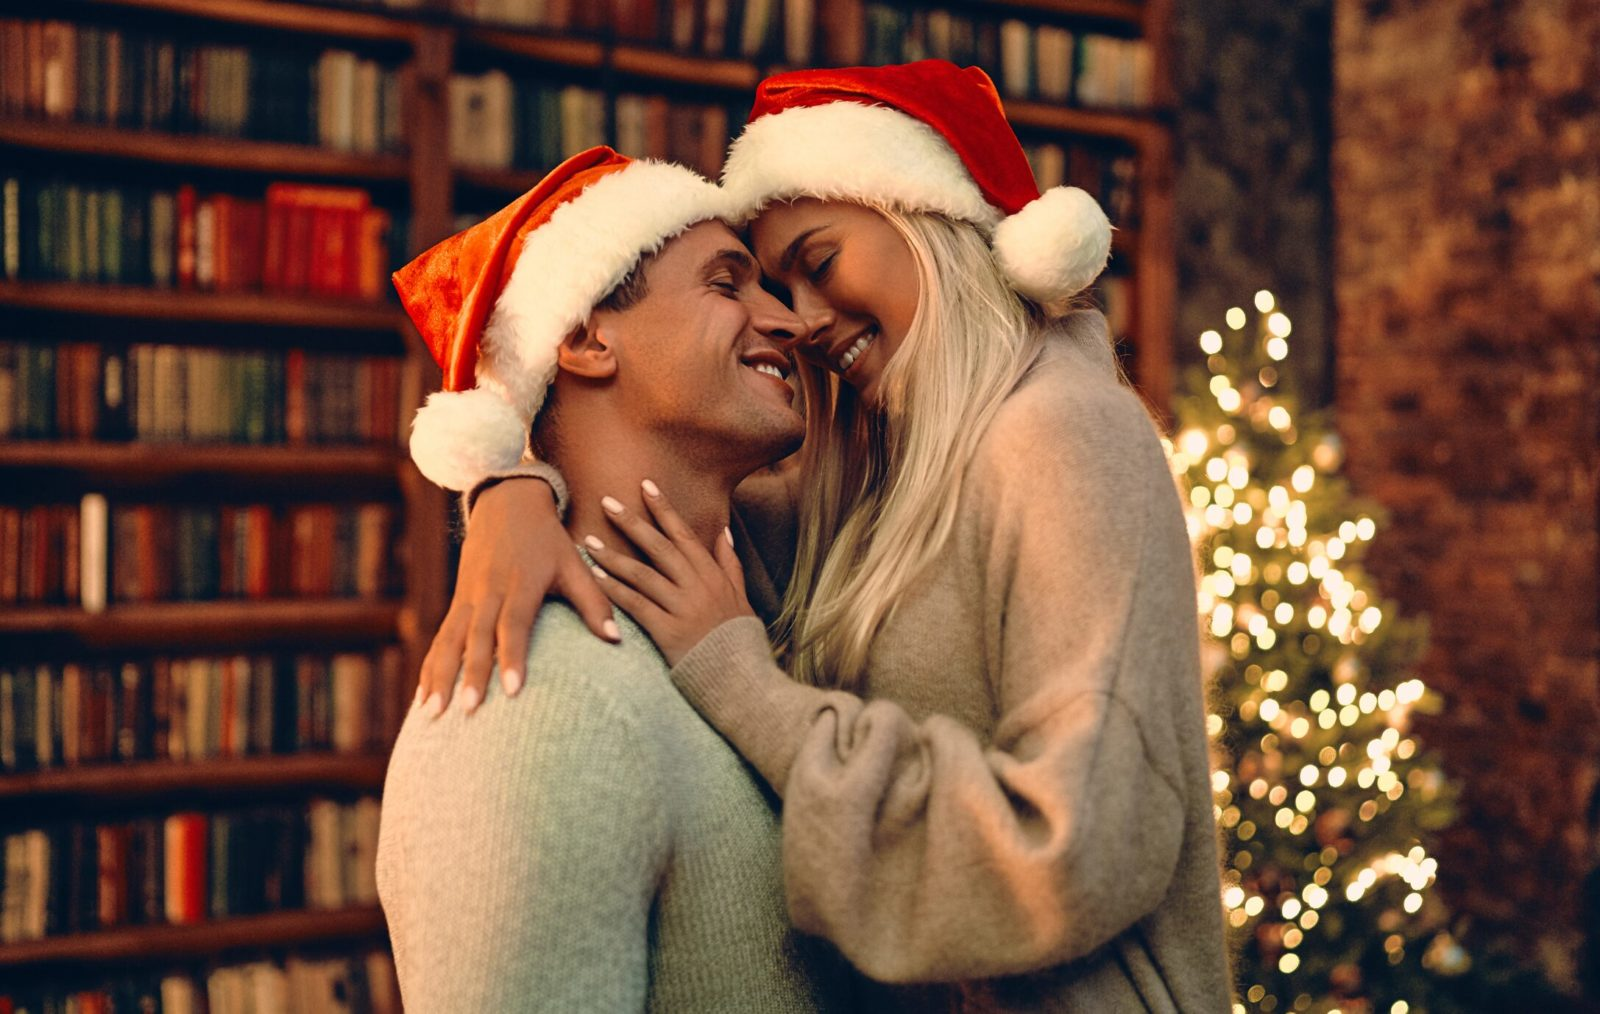 Fox News Today: 'Snow-globing' is the awful new holiday dating trend